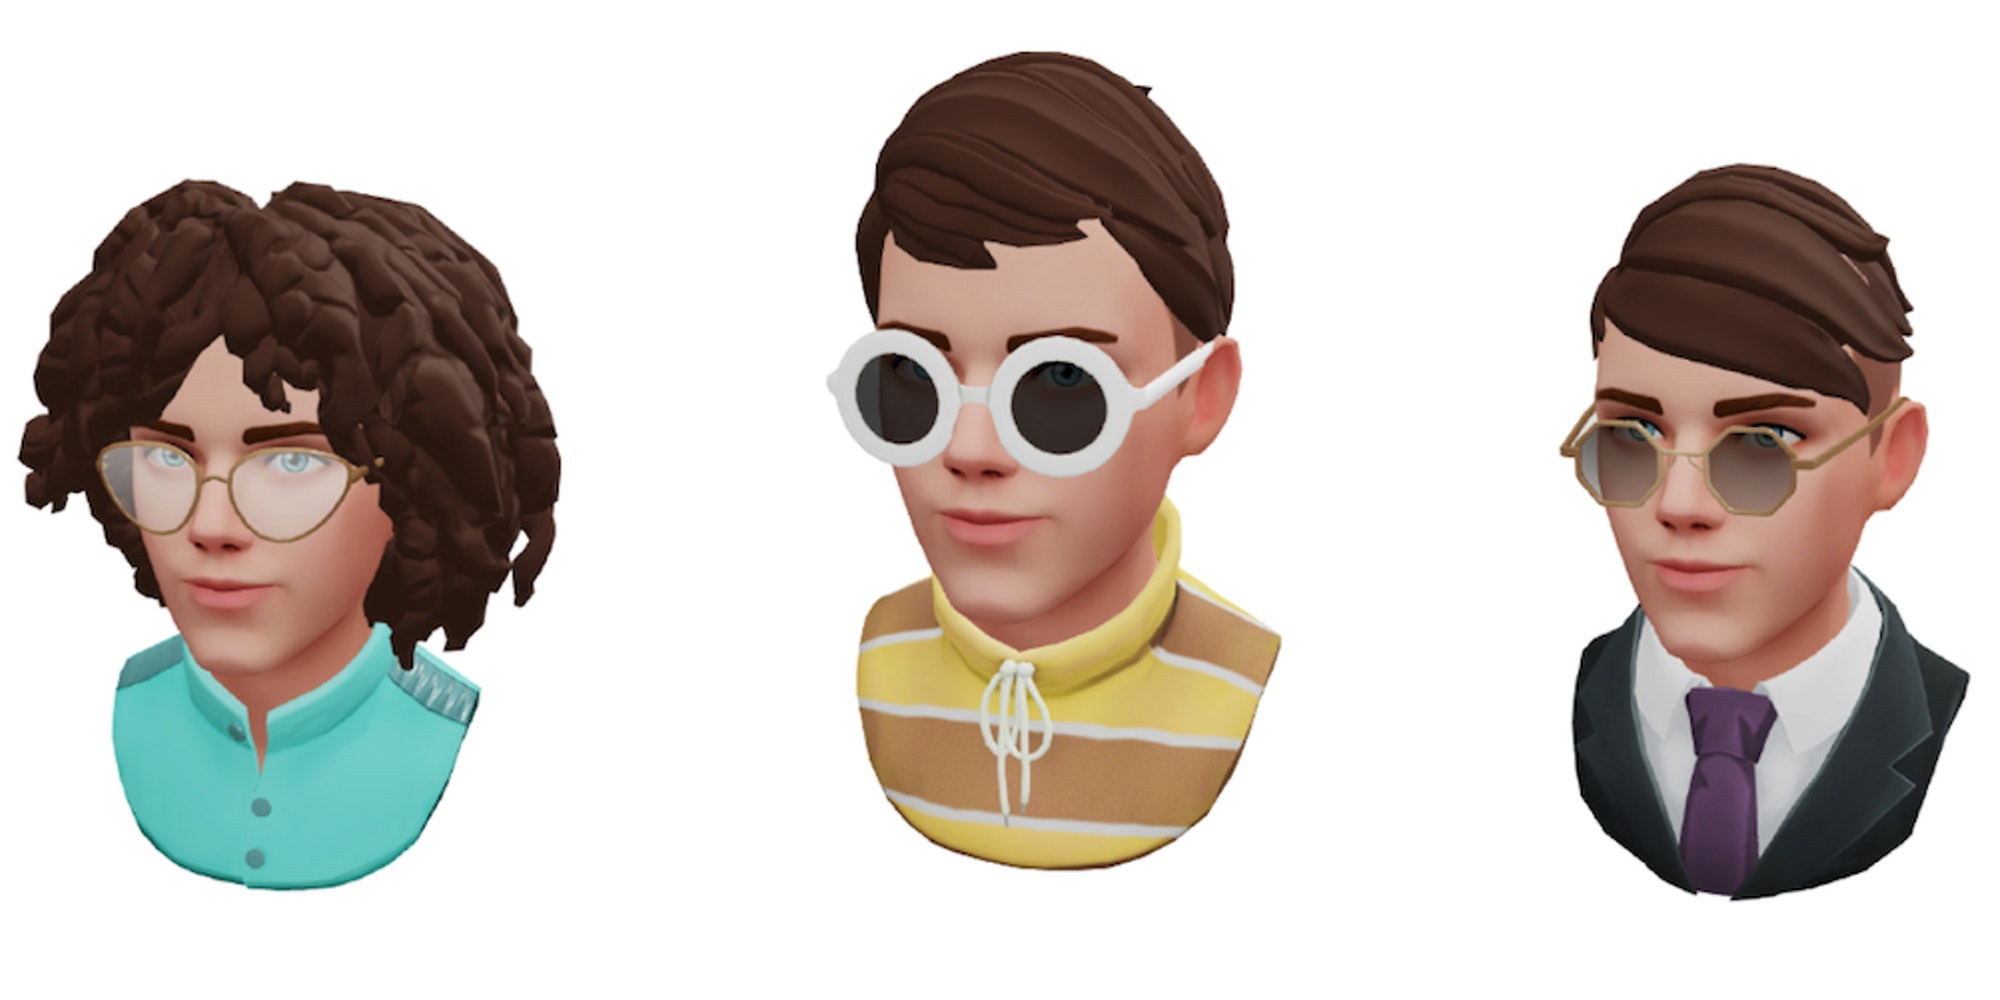 October Product Update - Full-Body Avatar Creator